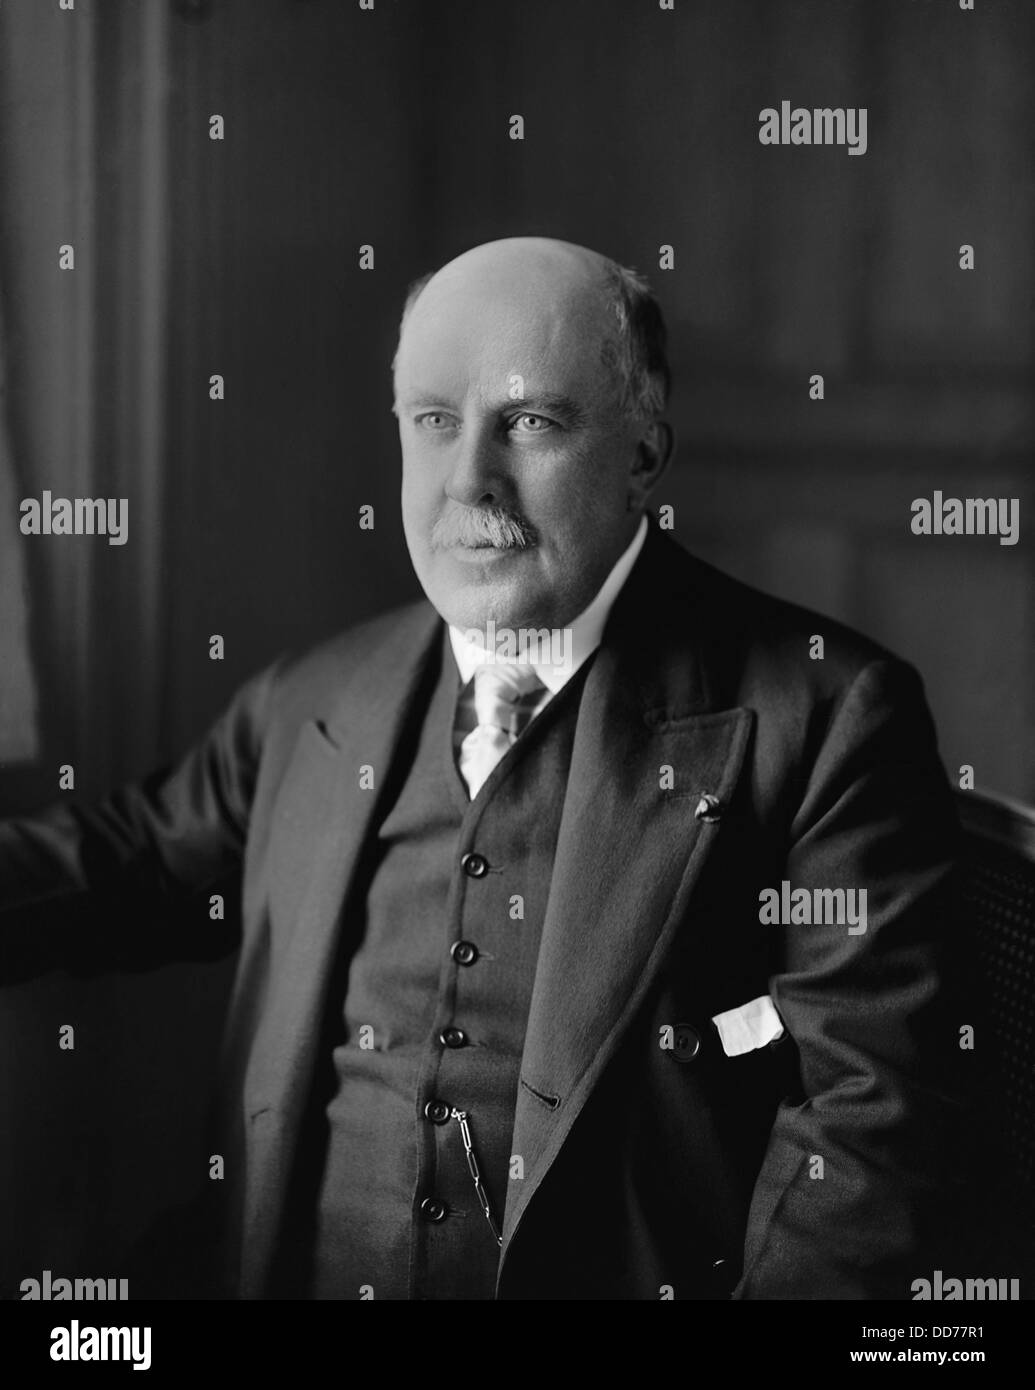 john roll mclean owner and publisher of the washington post ca john roll mclean owner and publisher of the washington post ca 1910 after graduating from harvard he worked at his